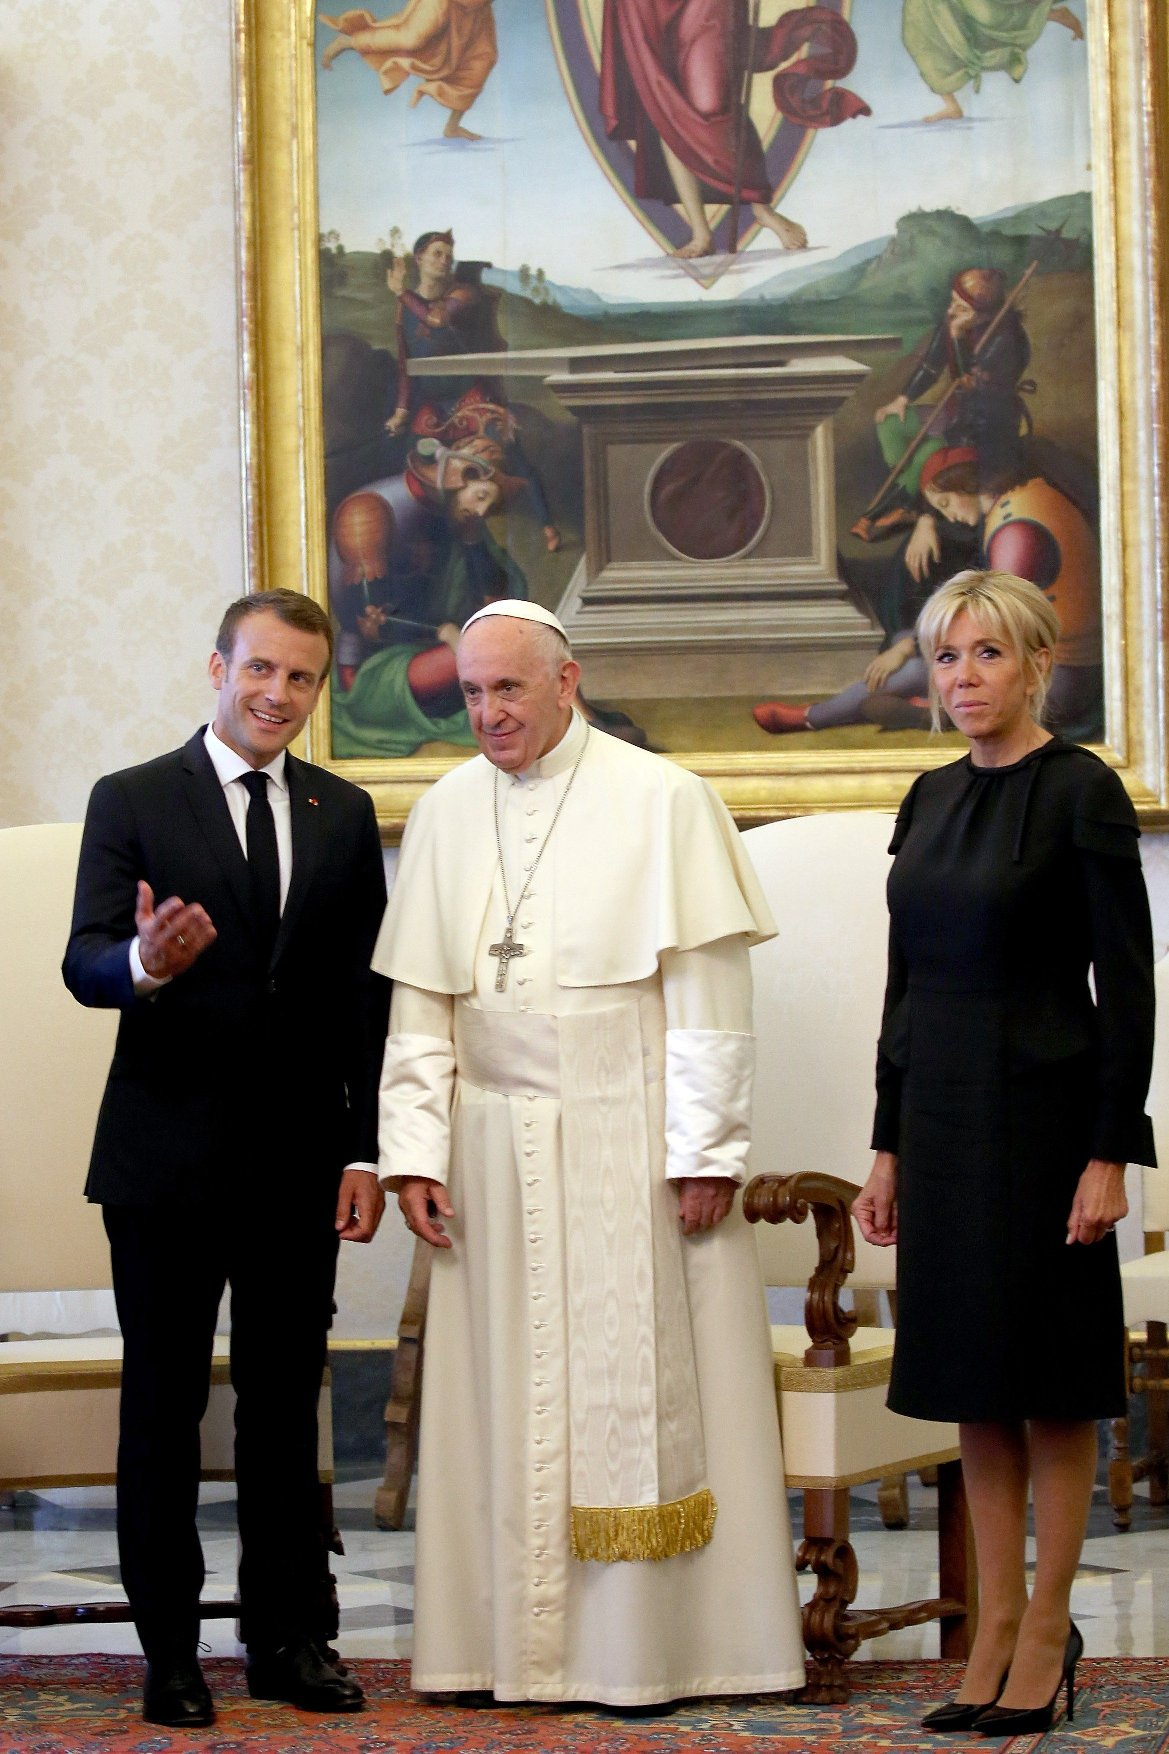 Pope Francis meets the French President Emmanuel Macron and his wife Brigitte during a private audience at the Apostolic Palace on June 26, 2018 in Vatican City, Vatican., Image: 376103357, License: Rights-managed, Restrictions: , Model Release: no, Credit line: Profimedia, Abaca